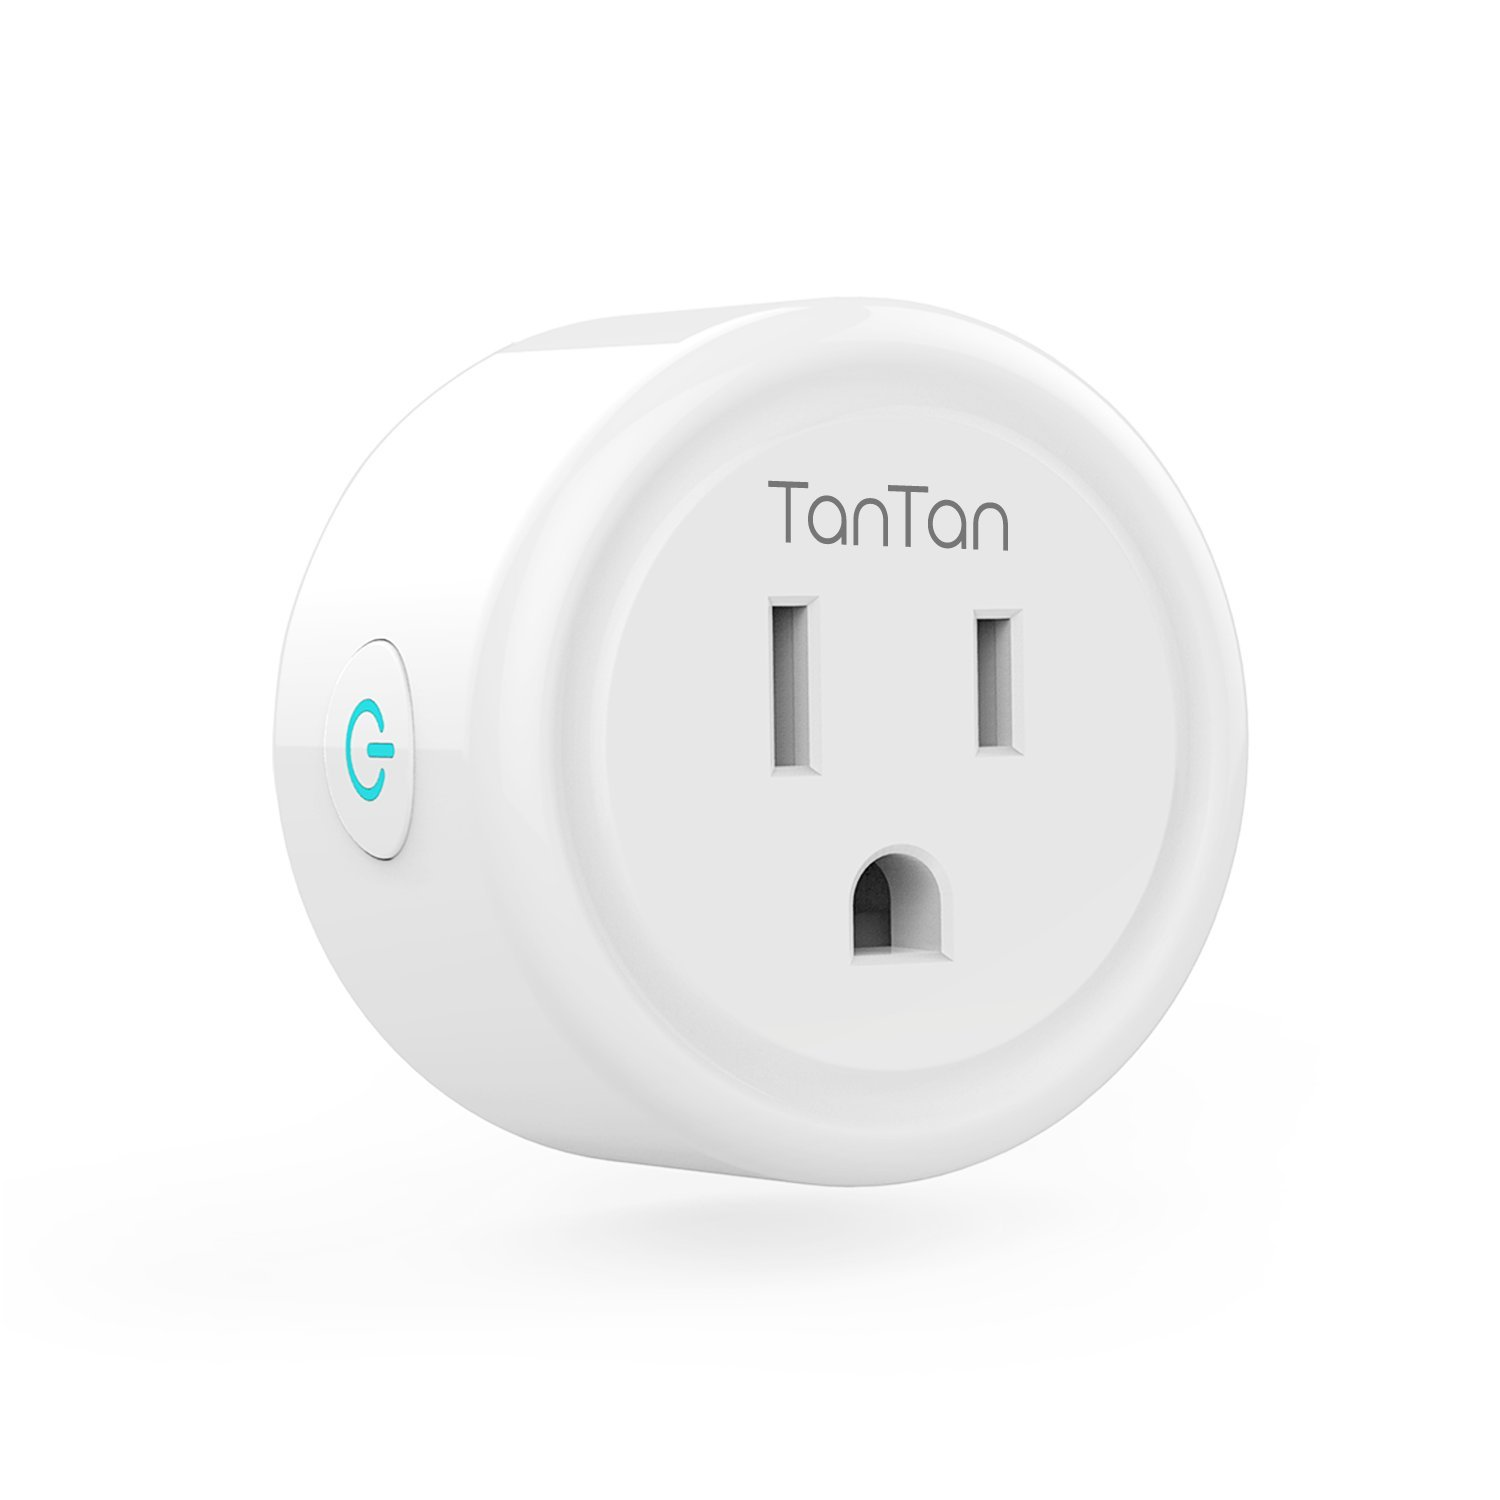 Smart Plug TanTan Wi-Fi Wireless Mini Socket Outlet Works with Amazon Alexa and Google Home & IFTTT, No Hub Required, Remote Control Your Devices from Anywhere, ETL Listed [Upgraded Version] by TanTan (Image #1)